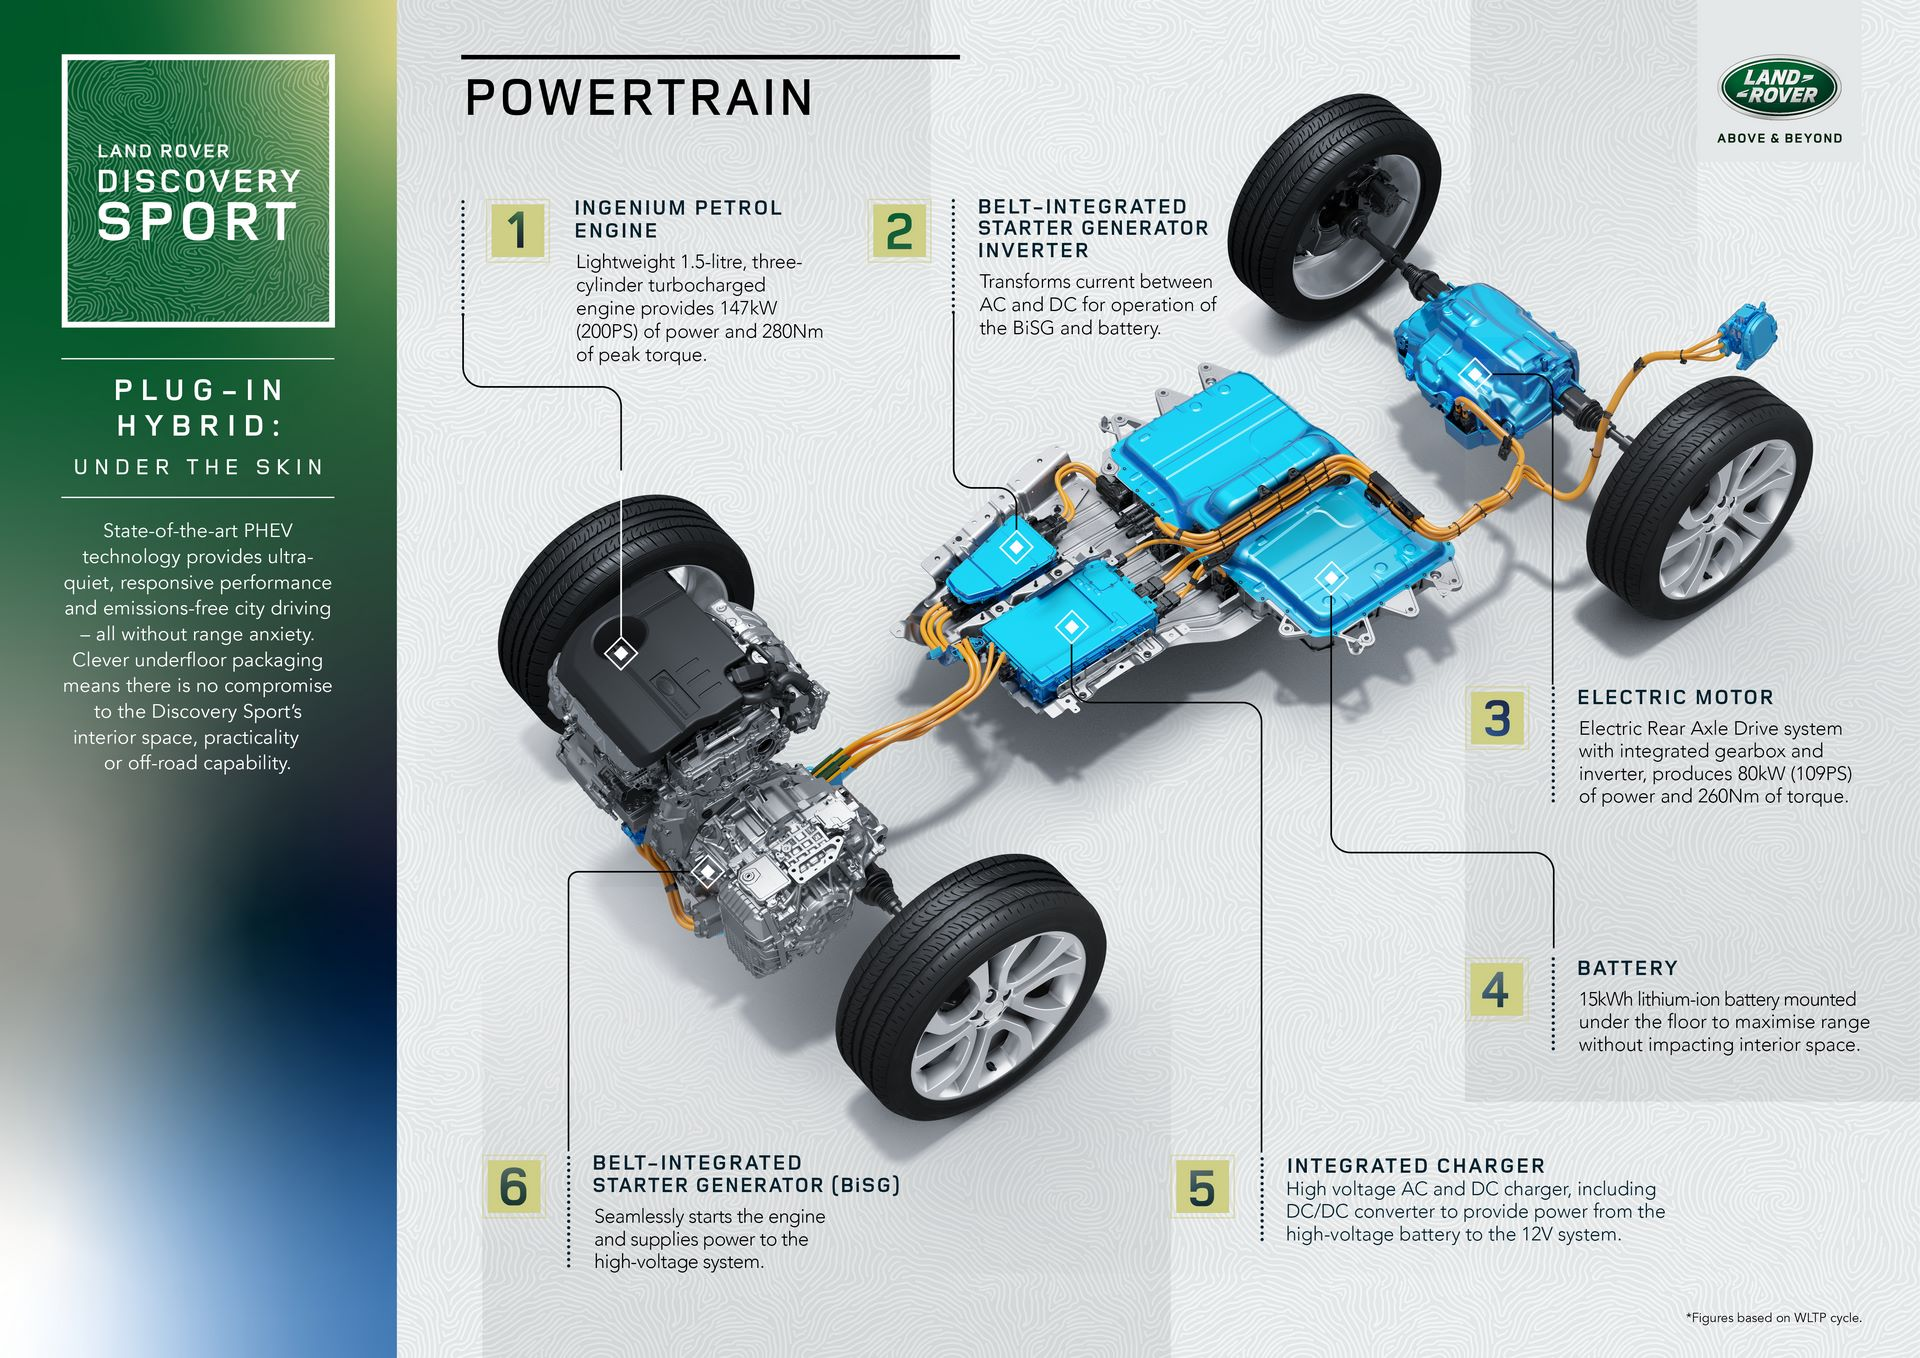 Plug-in-hybrid-Land-Rover-Discovery-Sport-PHEV-9